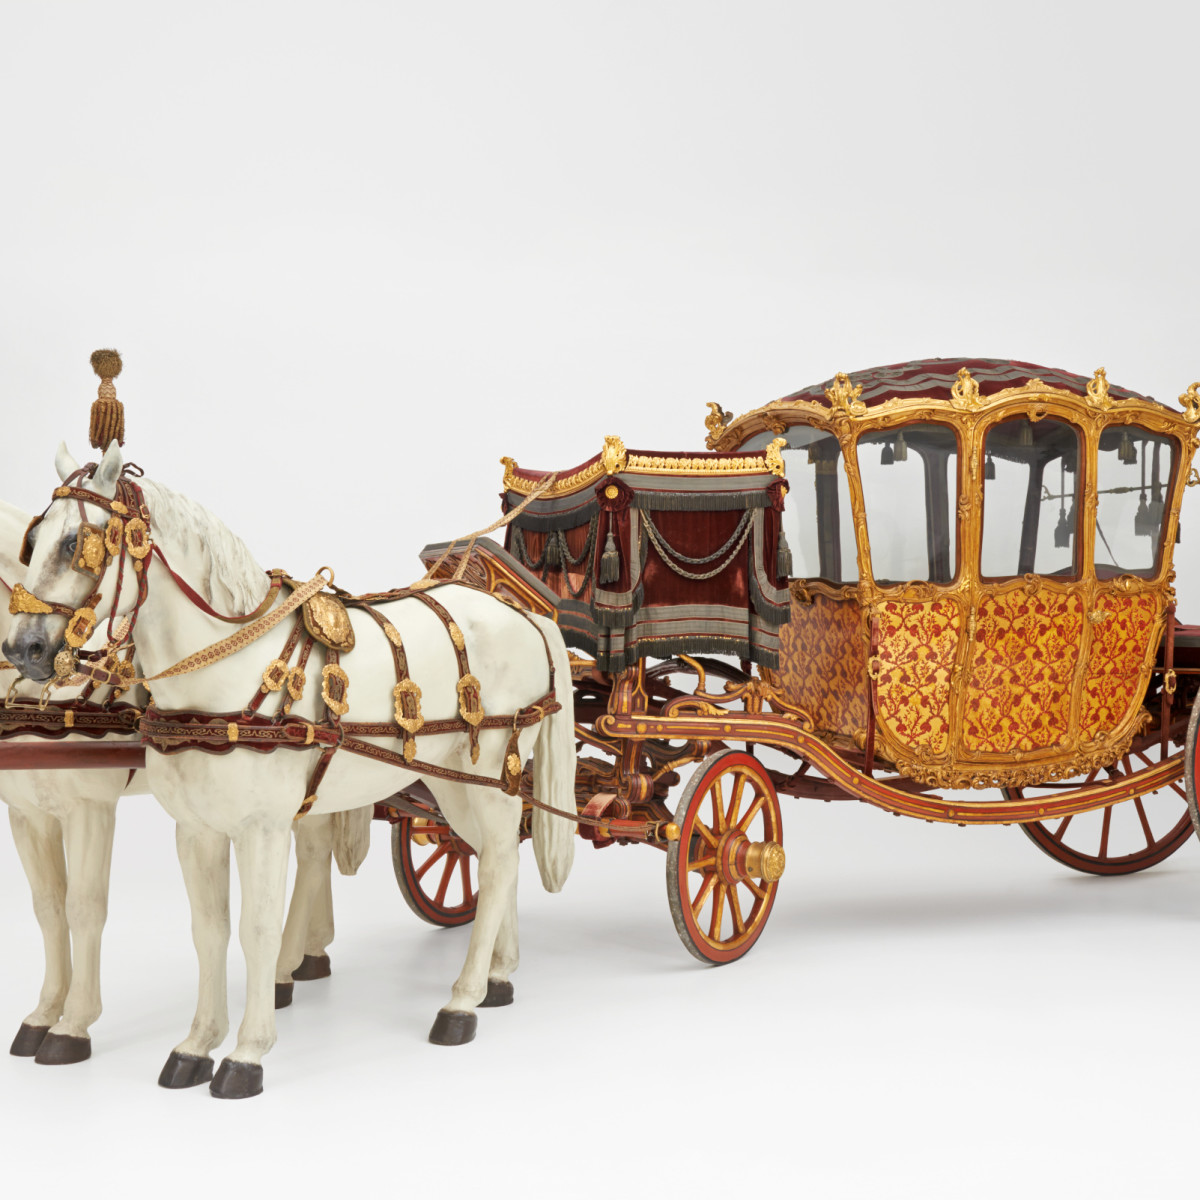 Habsburg Splendor Gala Carriage